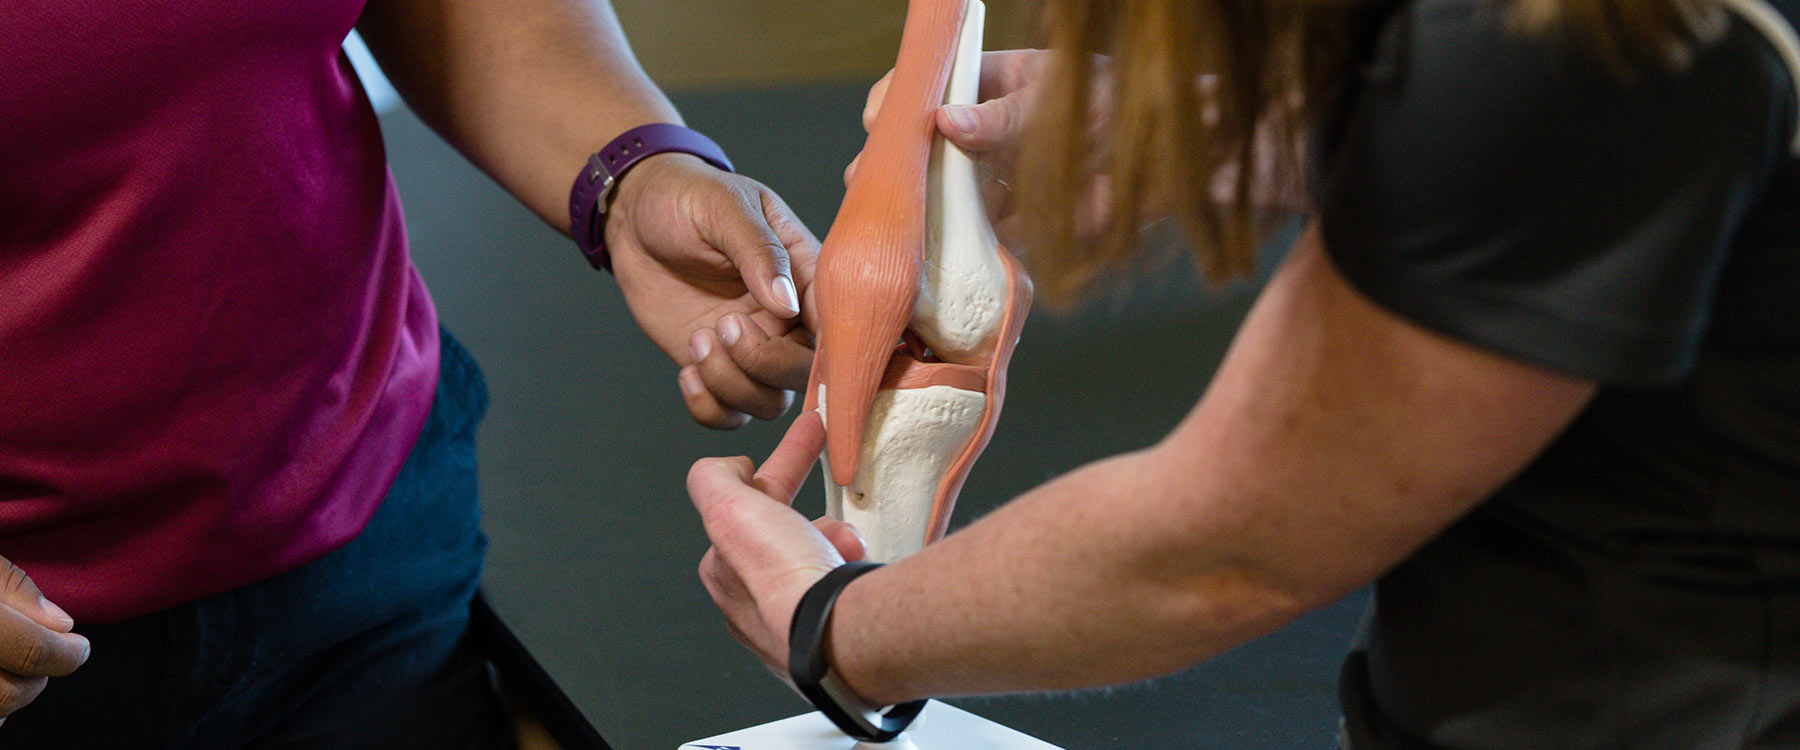 One student holds a functional model of the knee and points to a ligament as another student stands nearby watching.